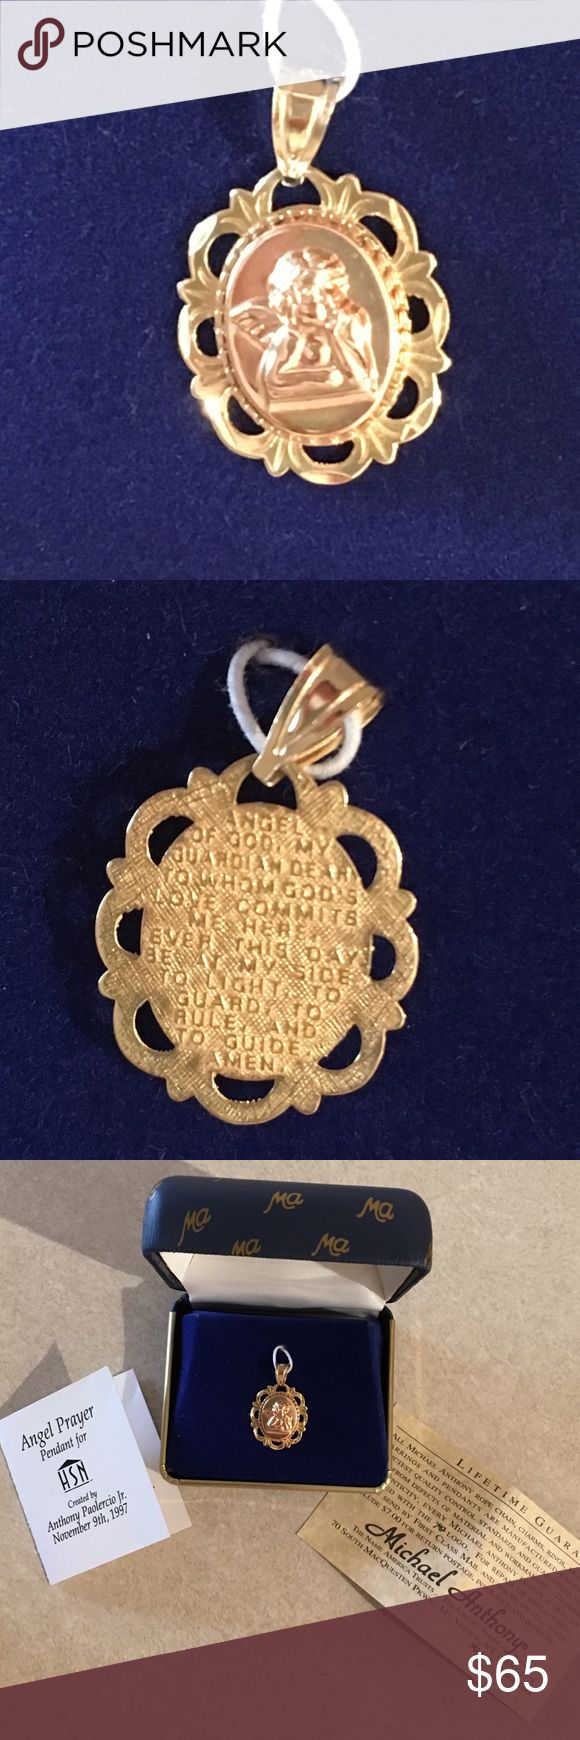 HSN 14Kt Gold Michael Anthony Angel Prayer Pendant Worn once, Like New in box with Certificate of Authenticity! From HSN 14Kt Gold Michael Anthony Angel Prayer Pendant. Beautiful Details! HSN Jewelry Necklaces